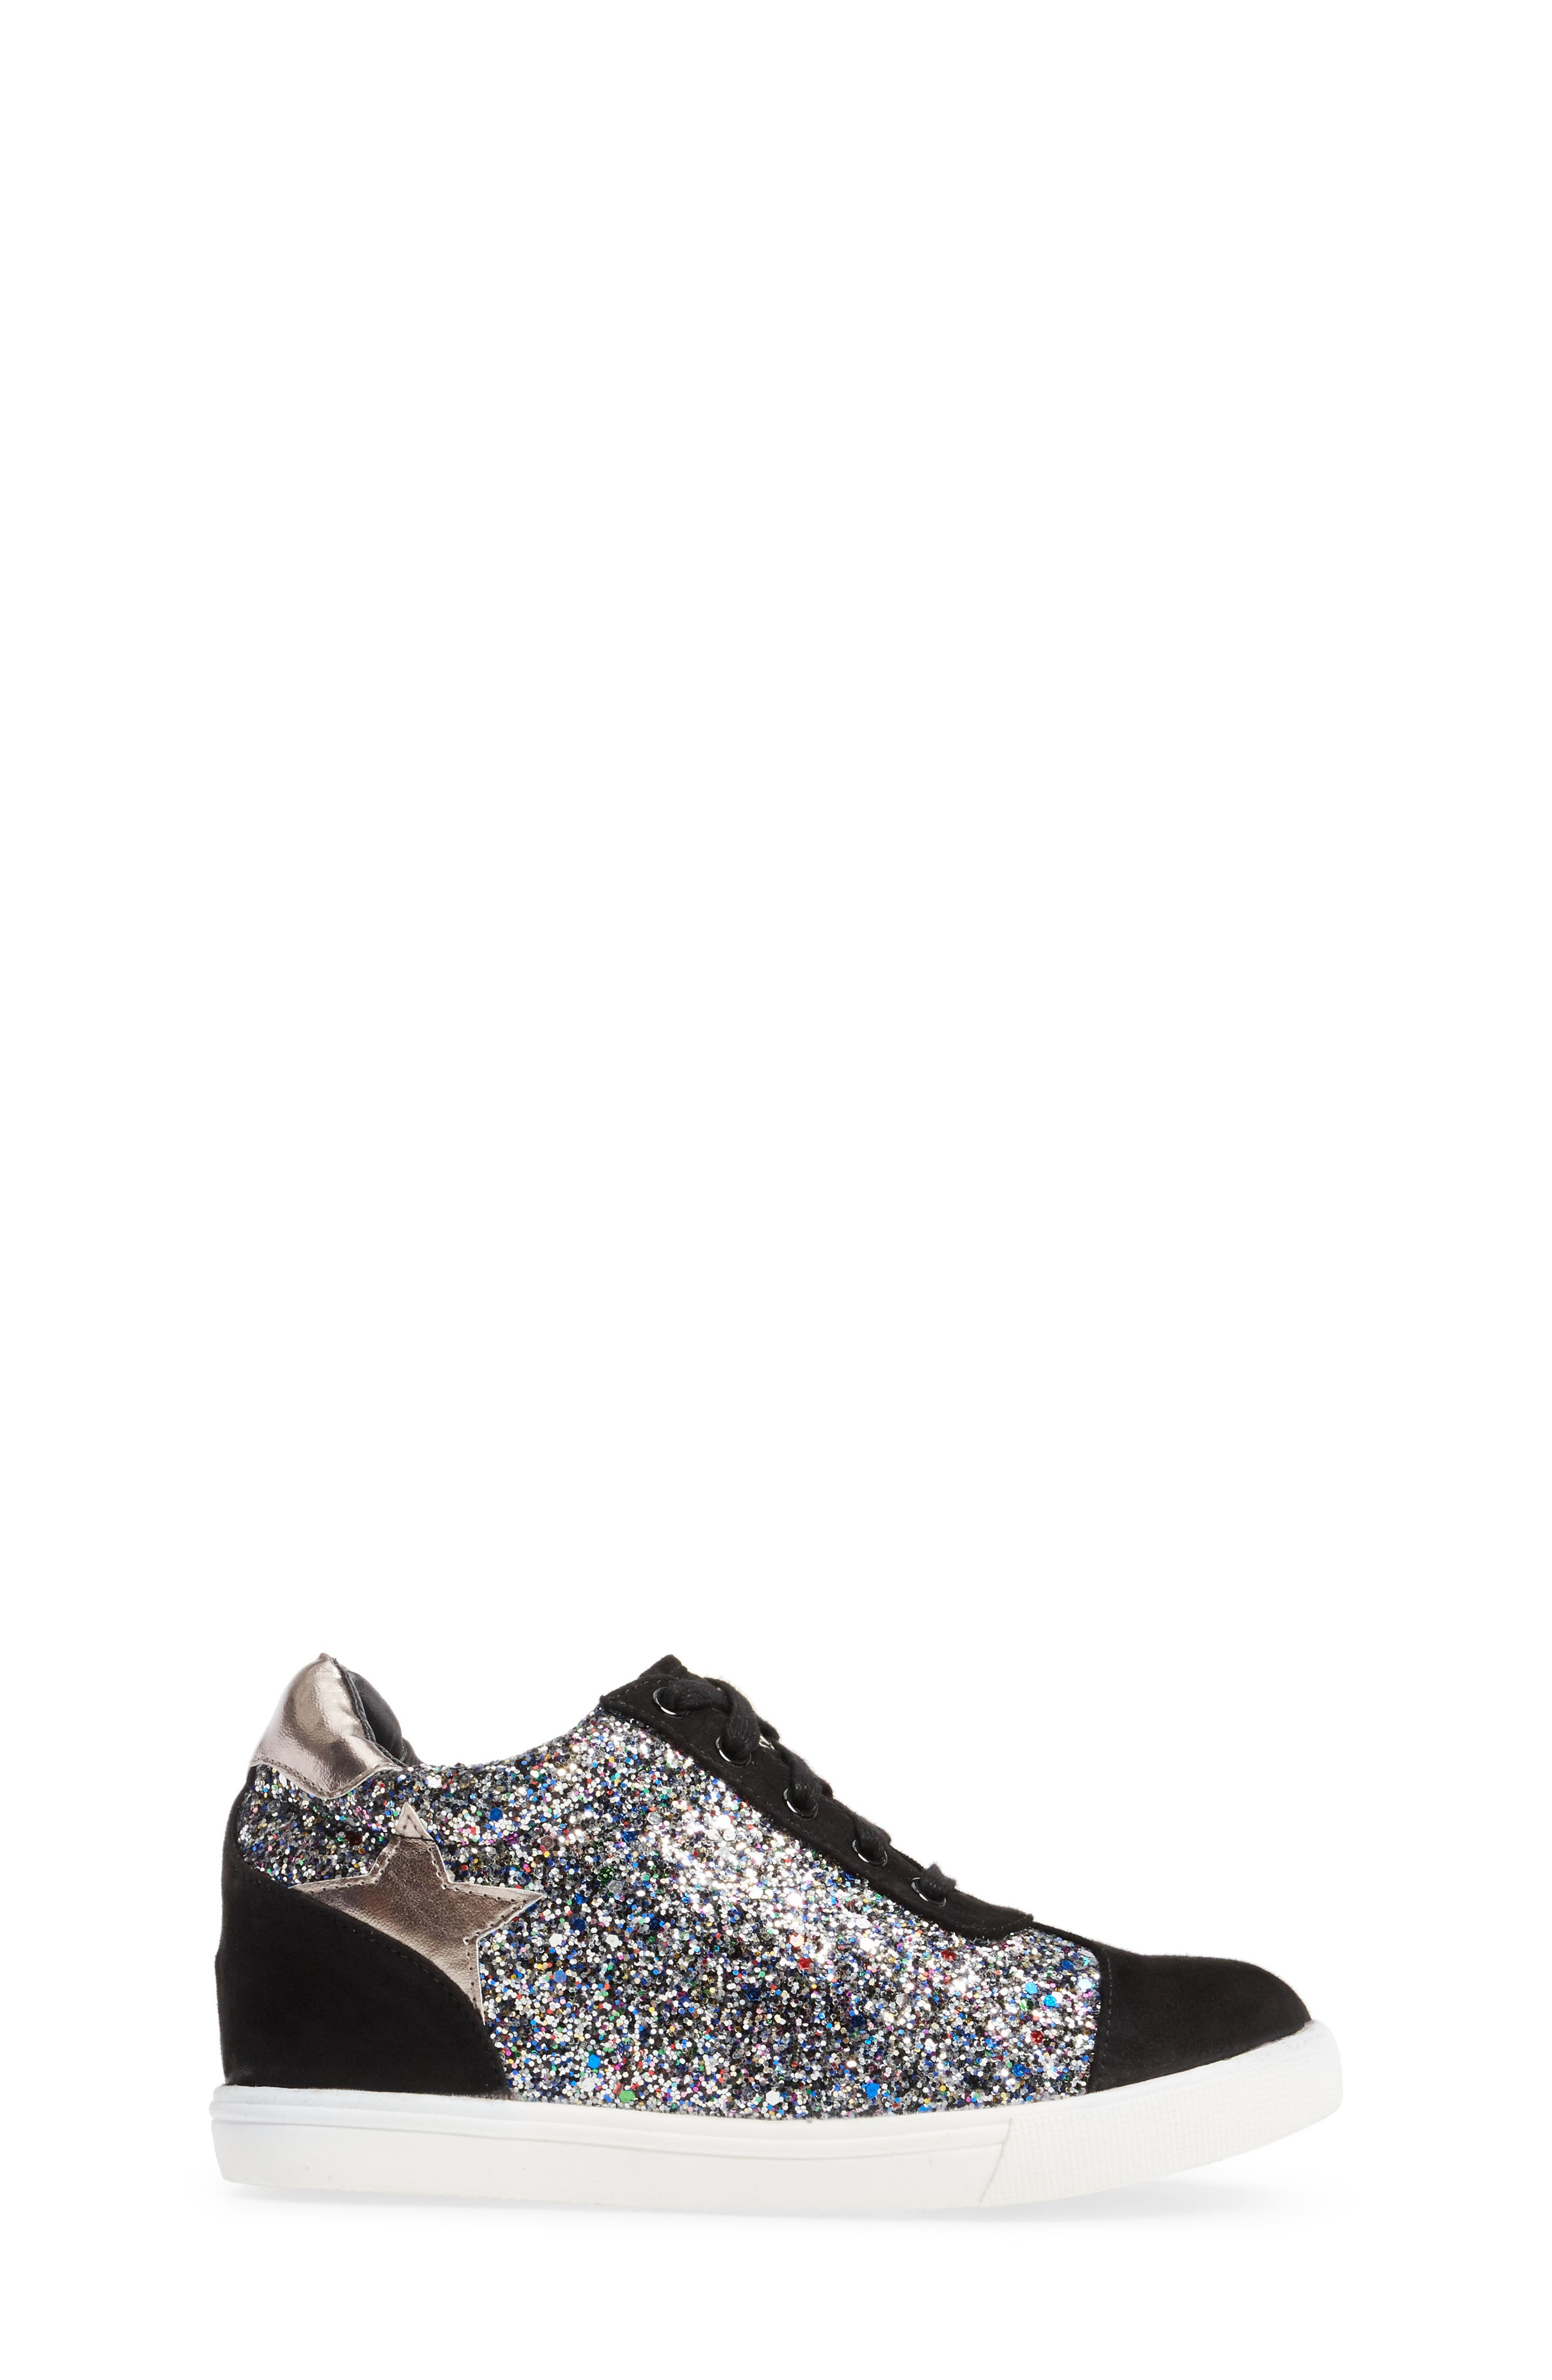 Alternate Image 2  - Ash Low Star Glittery Concealed Wedge Sneaker (Toddler, Little Kid & Big Kid)